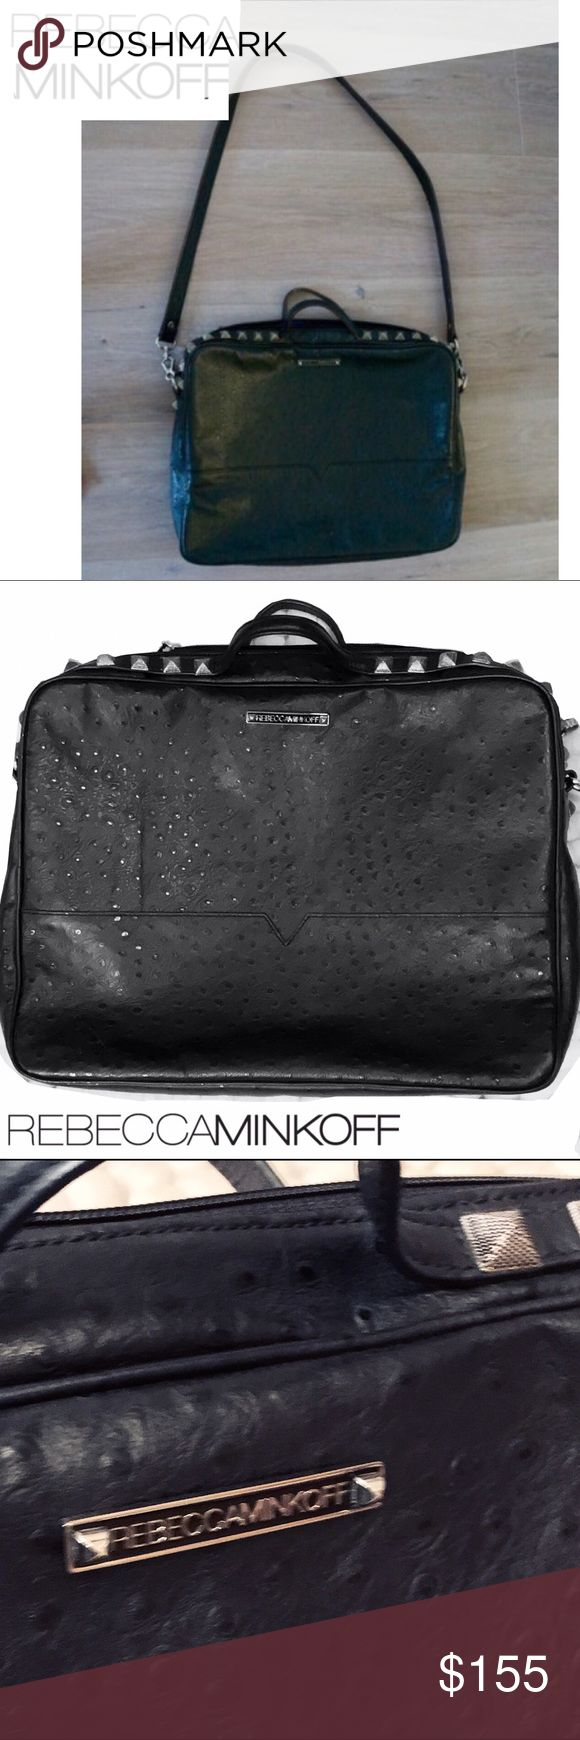 Gorgeous Rebecca Minkoff Ostrich Laptop case/bag REBECCA MINKOFF   Luxe Ostrich Leather Sleever Laptop Bag The bag definitely has some edge, understated rockstar factor 😉. The ostrich leather for texture, fully lined w/ deep blue and black polka dots. Spikes on the top/corners (you can see in the photos) Also comes with the cross body strap. Excellent condition! Keep your laptop safe and stylish at the same time:). Rebecca Minkoff Bags Laptop Bags